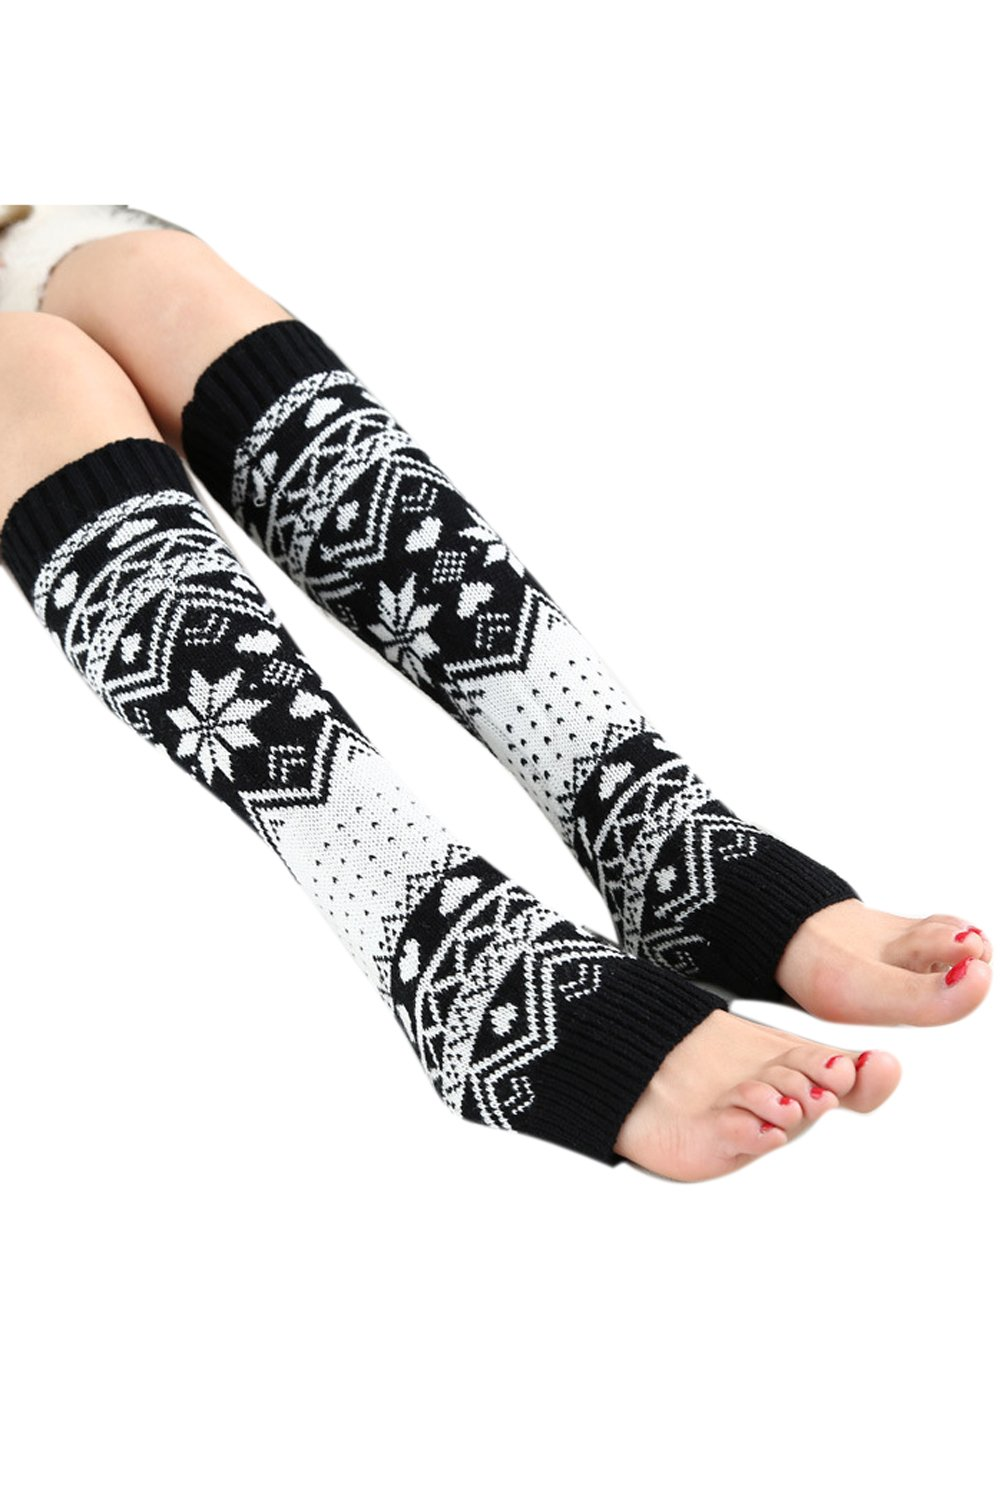 Women Winter Leg Warmers Patchwork Christmas Knitted Crochet Midi Boot Socks Set Black One Size CAVI206-Black-F